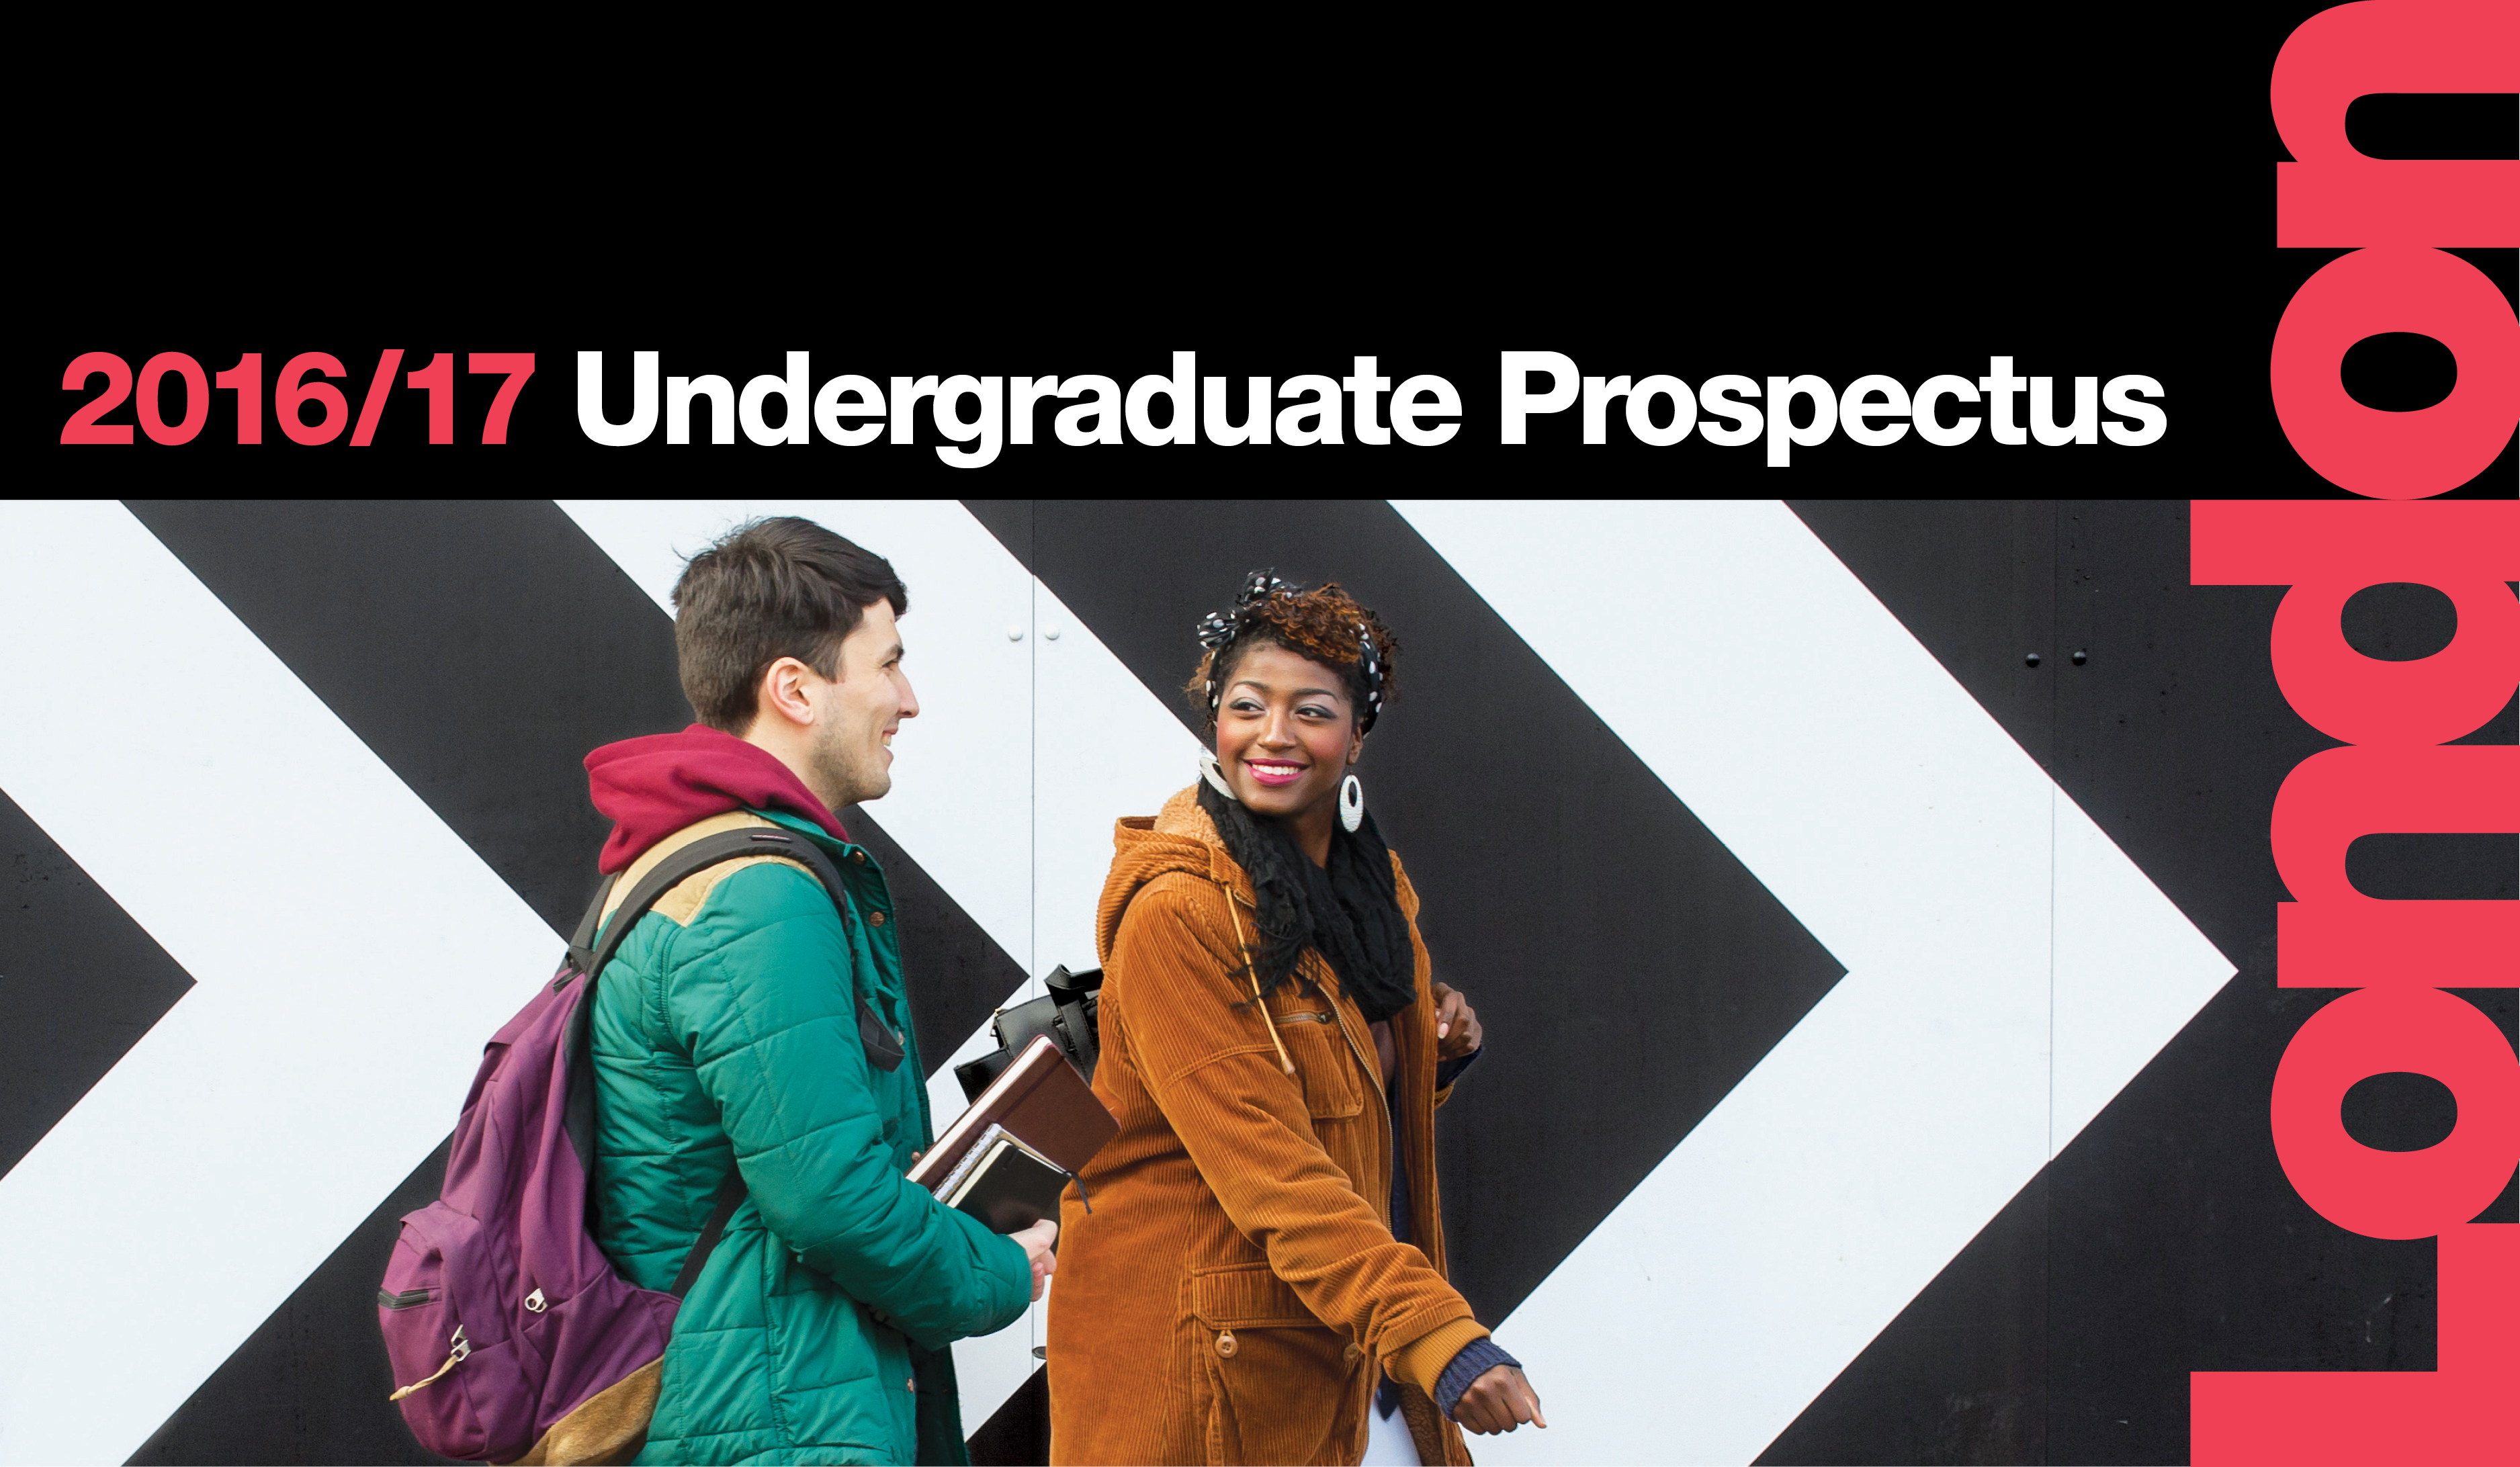 Image of the UG Prospectus 2016/17 created as 900x524